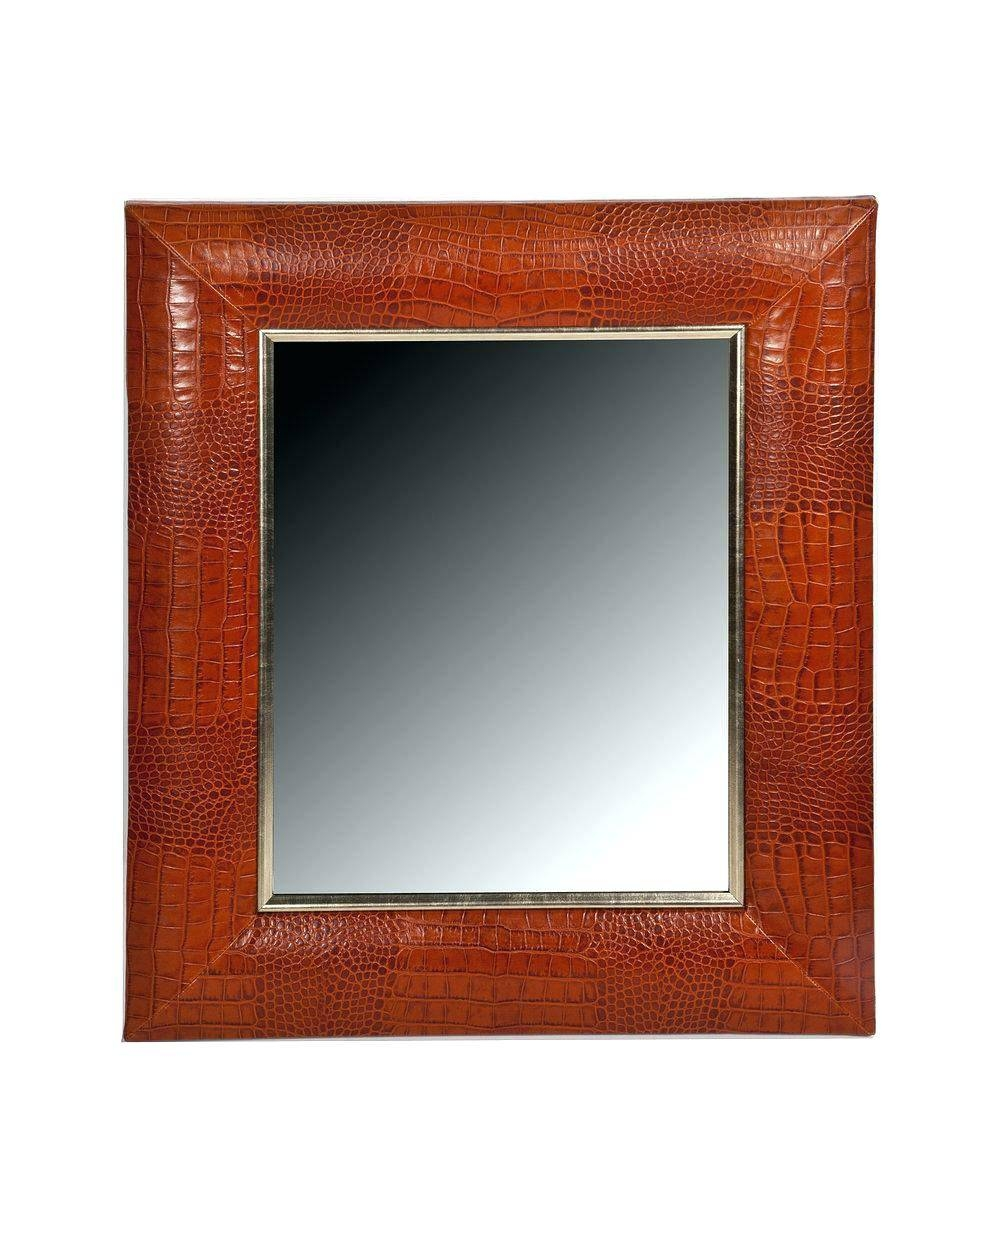 Wall Mirrors ~ Celine Black Leather Round Wall Mirror Leather Inside Black Leather Framed Mirrors (View 7 of 15)